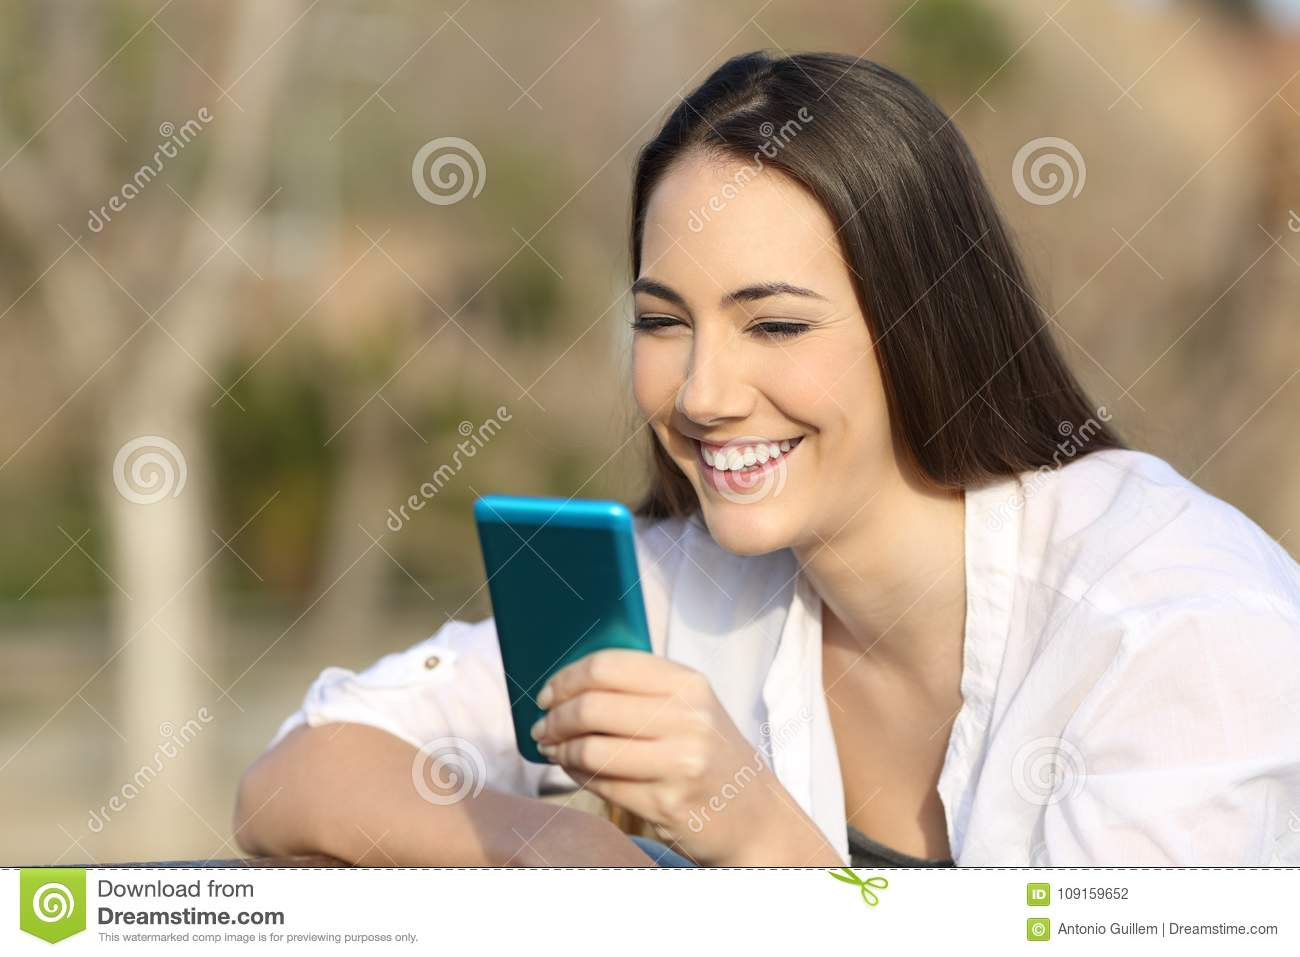 Woman using a blue smart phone outdoors